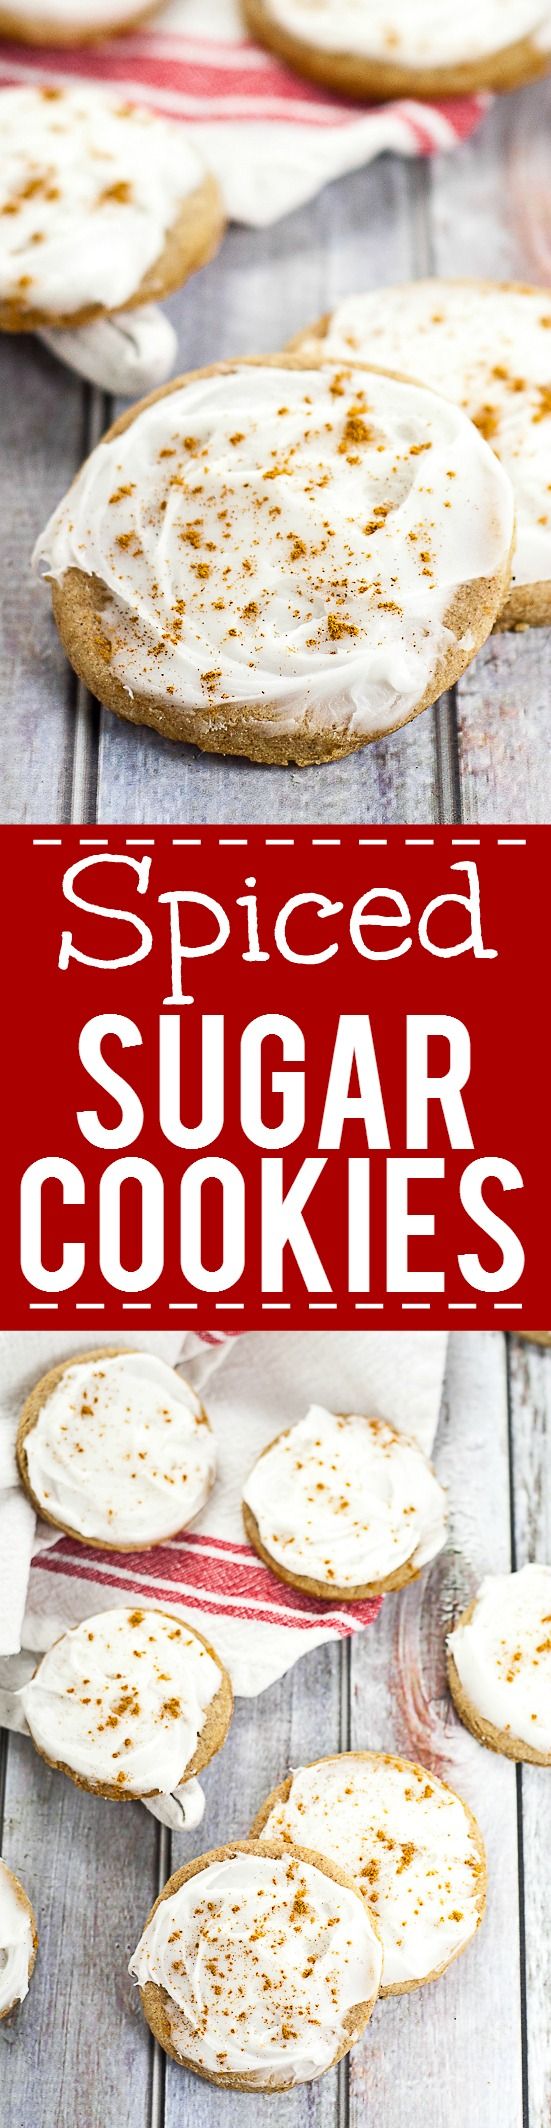 Spiced Sugar Cookies Recipe - Spiced Sugar Cookies recipe take your traditional sugar cookies and make them amazing with spicy cinnamon and nutmeg, topped with a creamy frosting and a sprinkle of cinnamon! These make such easy and yummy Christmas cookies! Perfect for a Christmas cookie exchange!